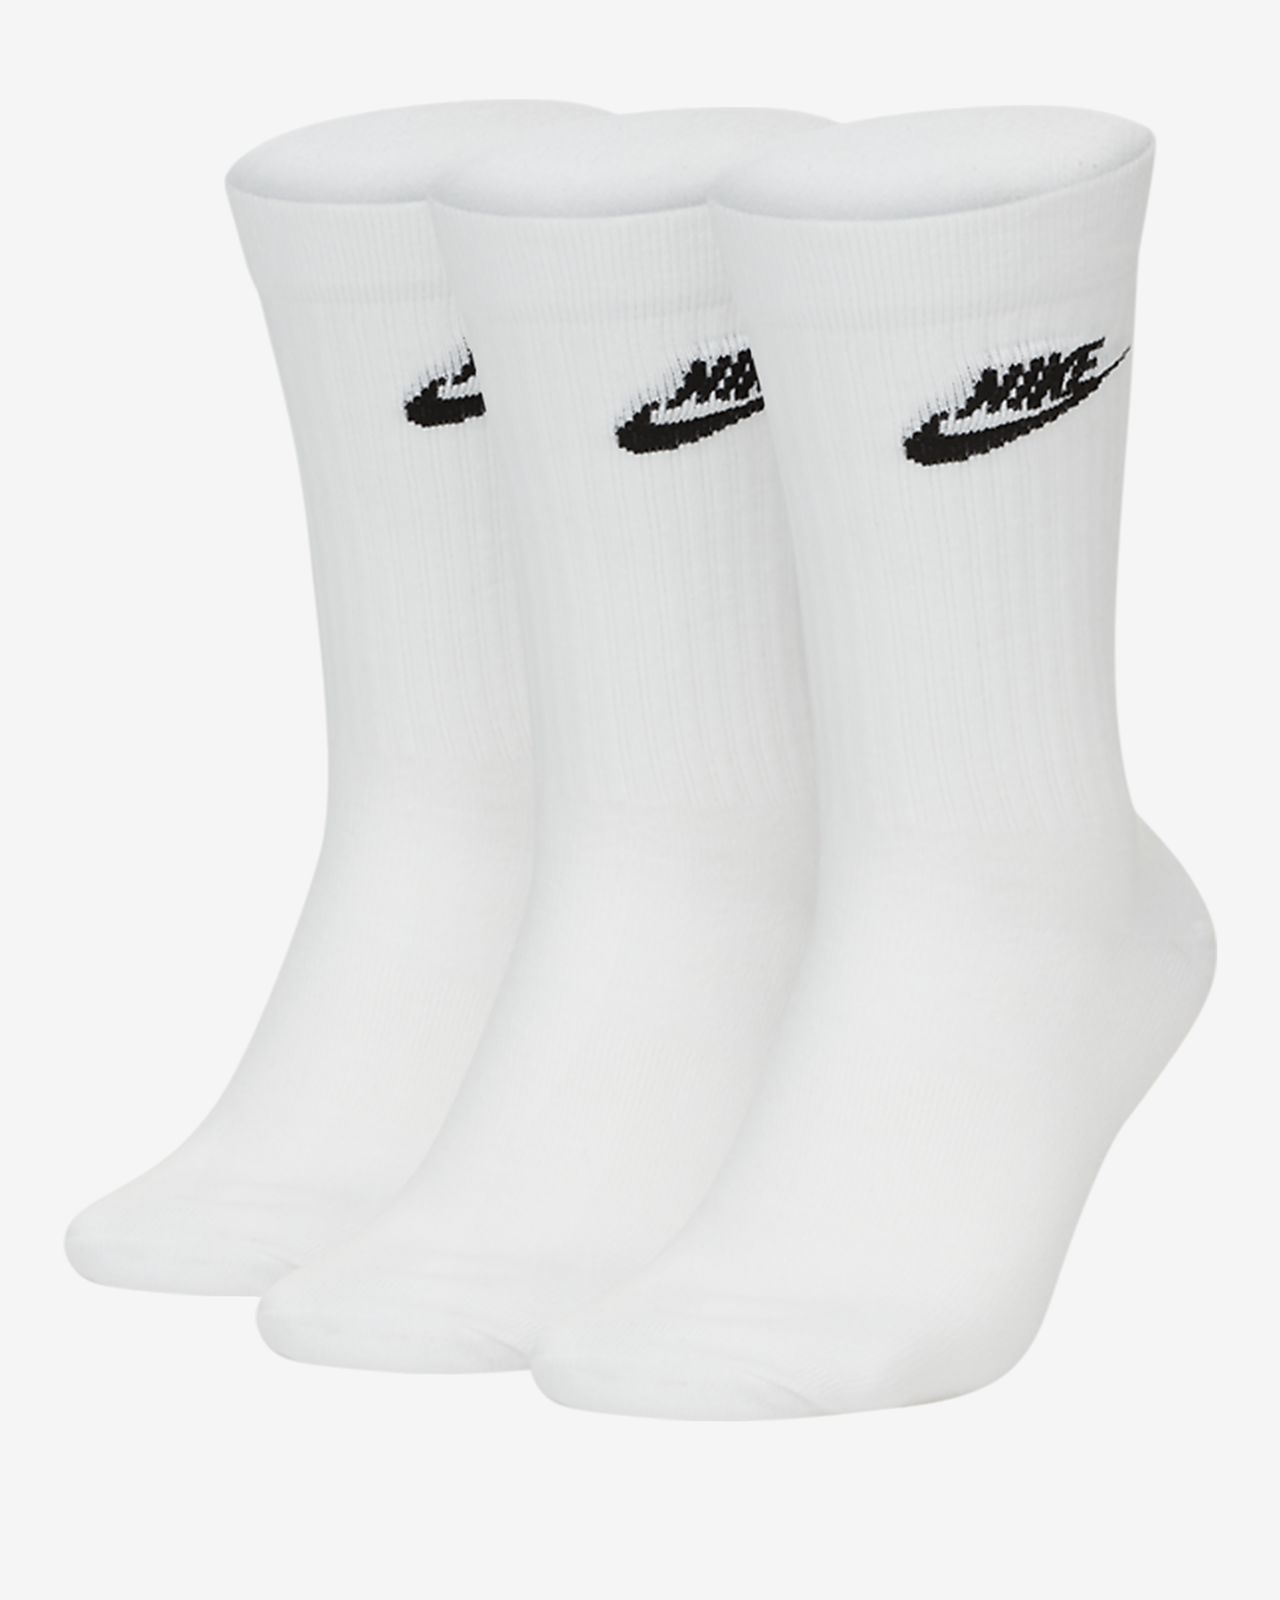 Nike Sportswear Everyday Essential Crew Socks (3 Pairs)